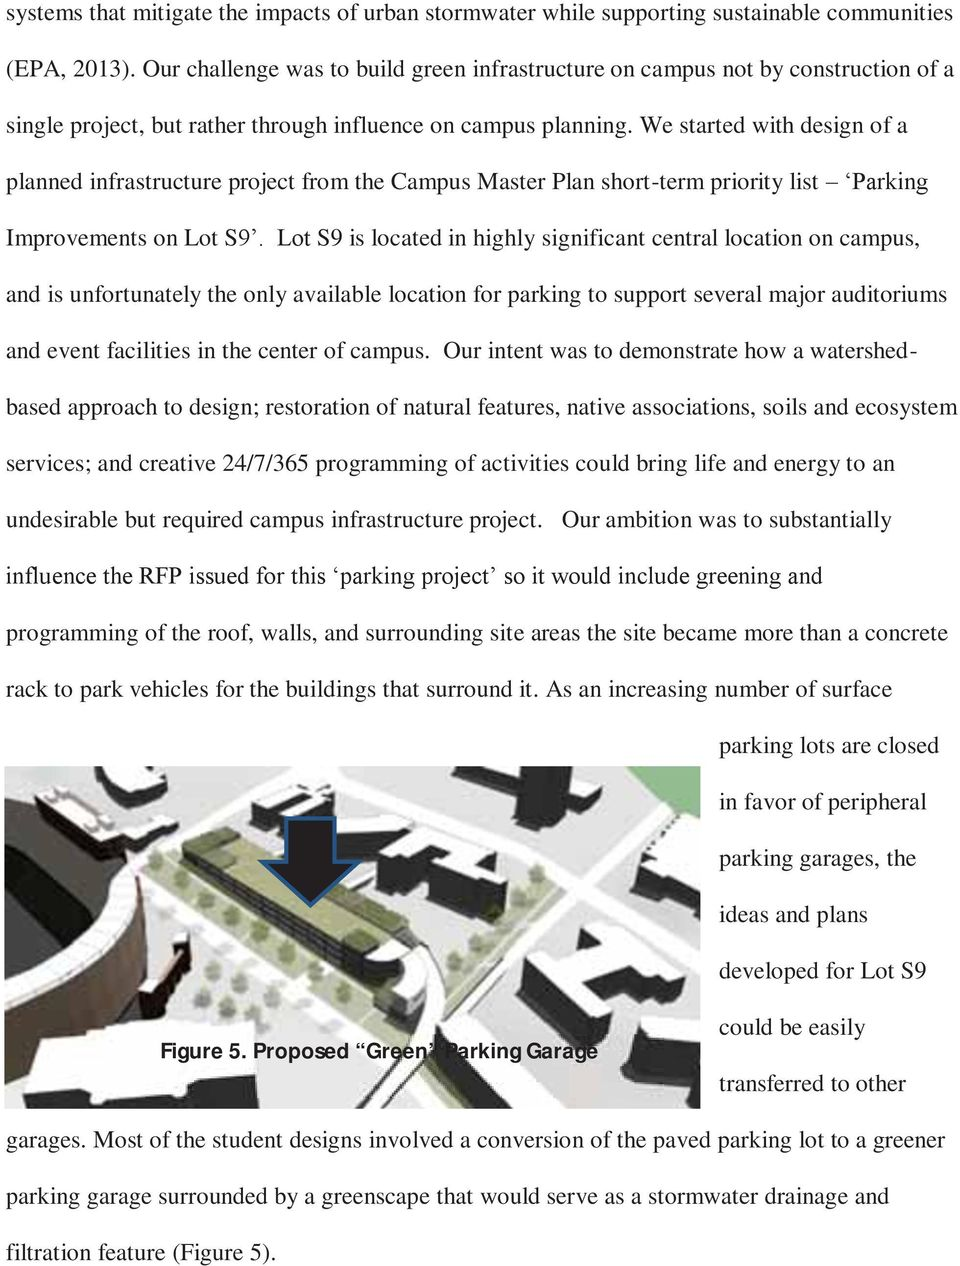 We started with design of a planned infrastructure project from the Campus Master Plan short-term priority list Parking Improvements on Lot S9.